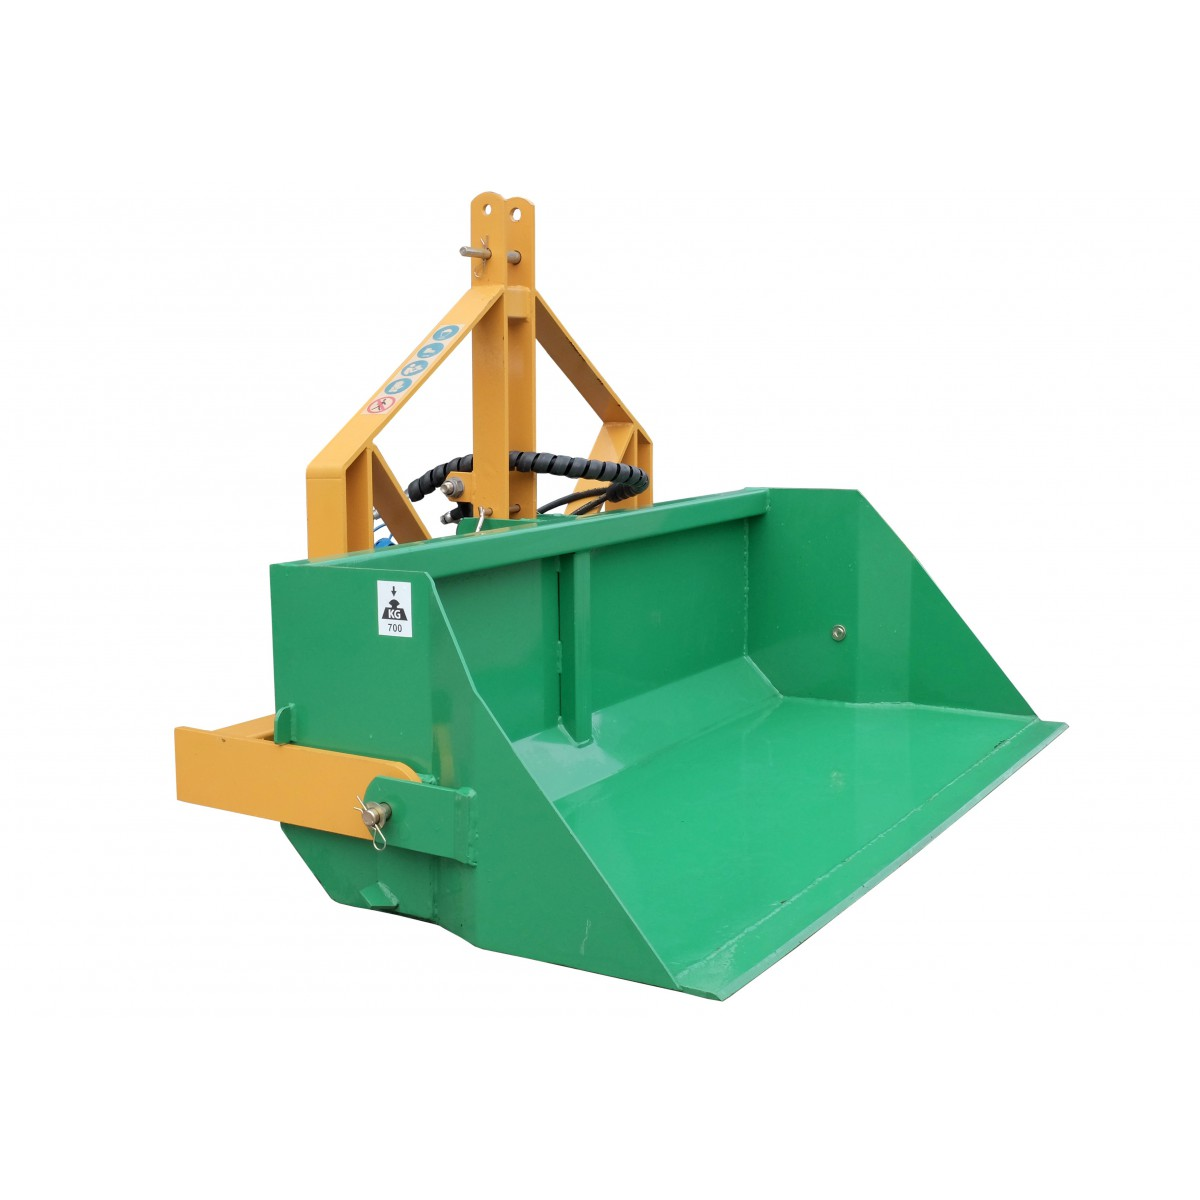 160 cm transport box with a hydraulic tipper, capacity 700 kg